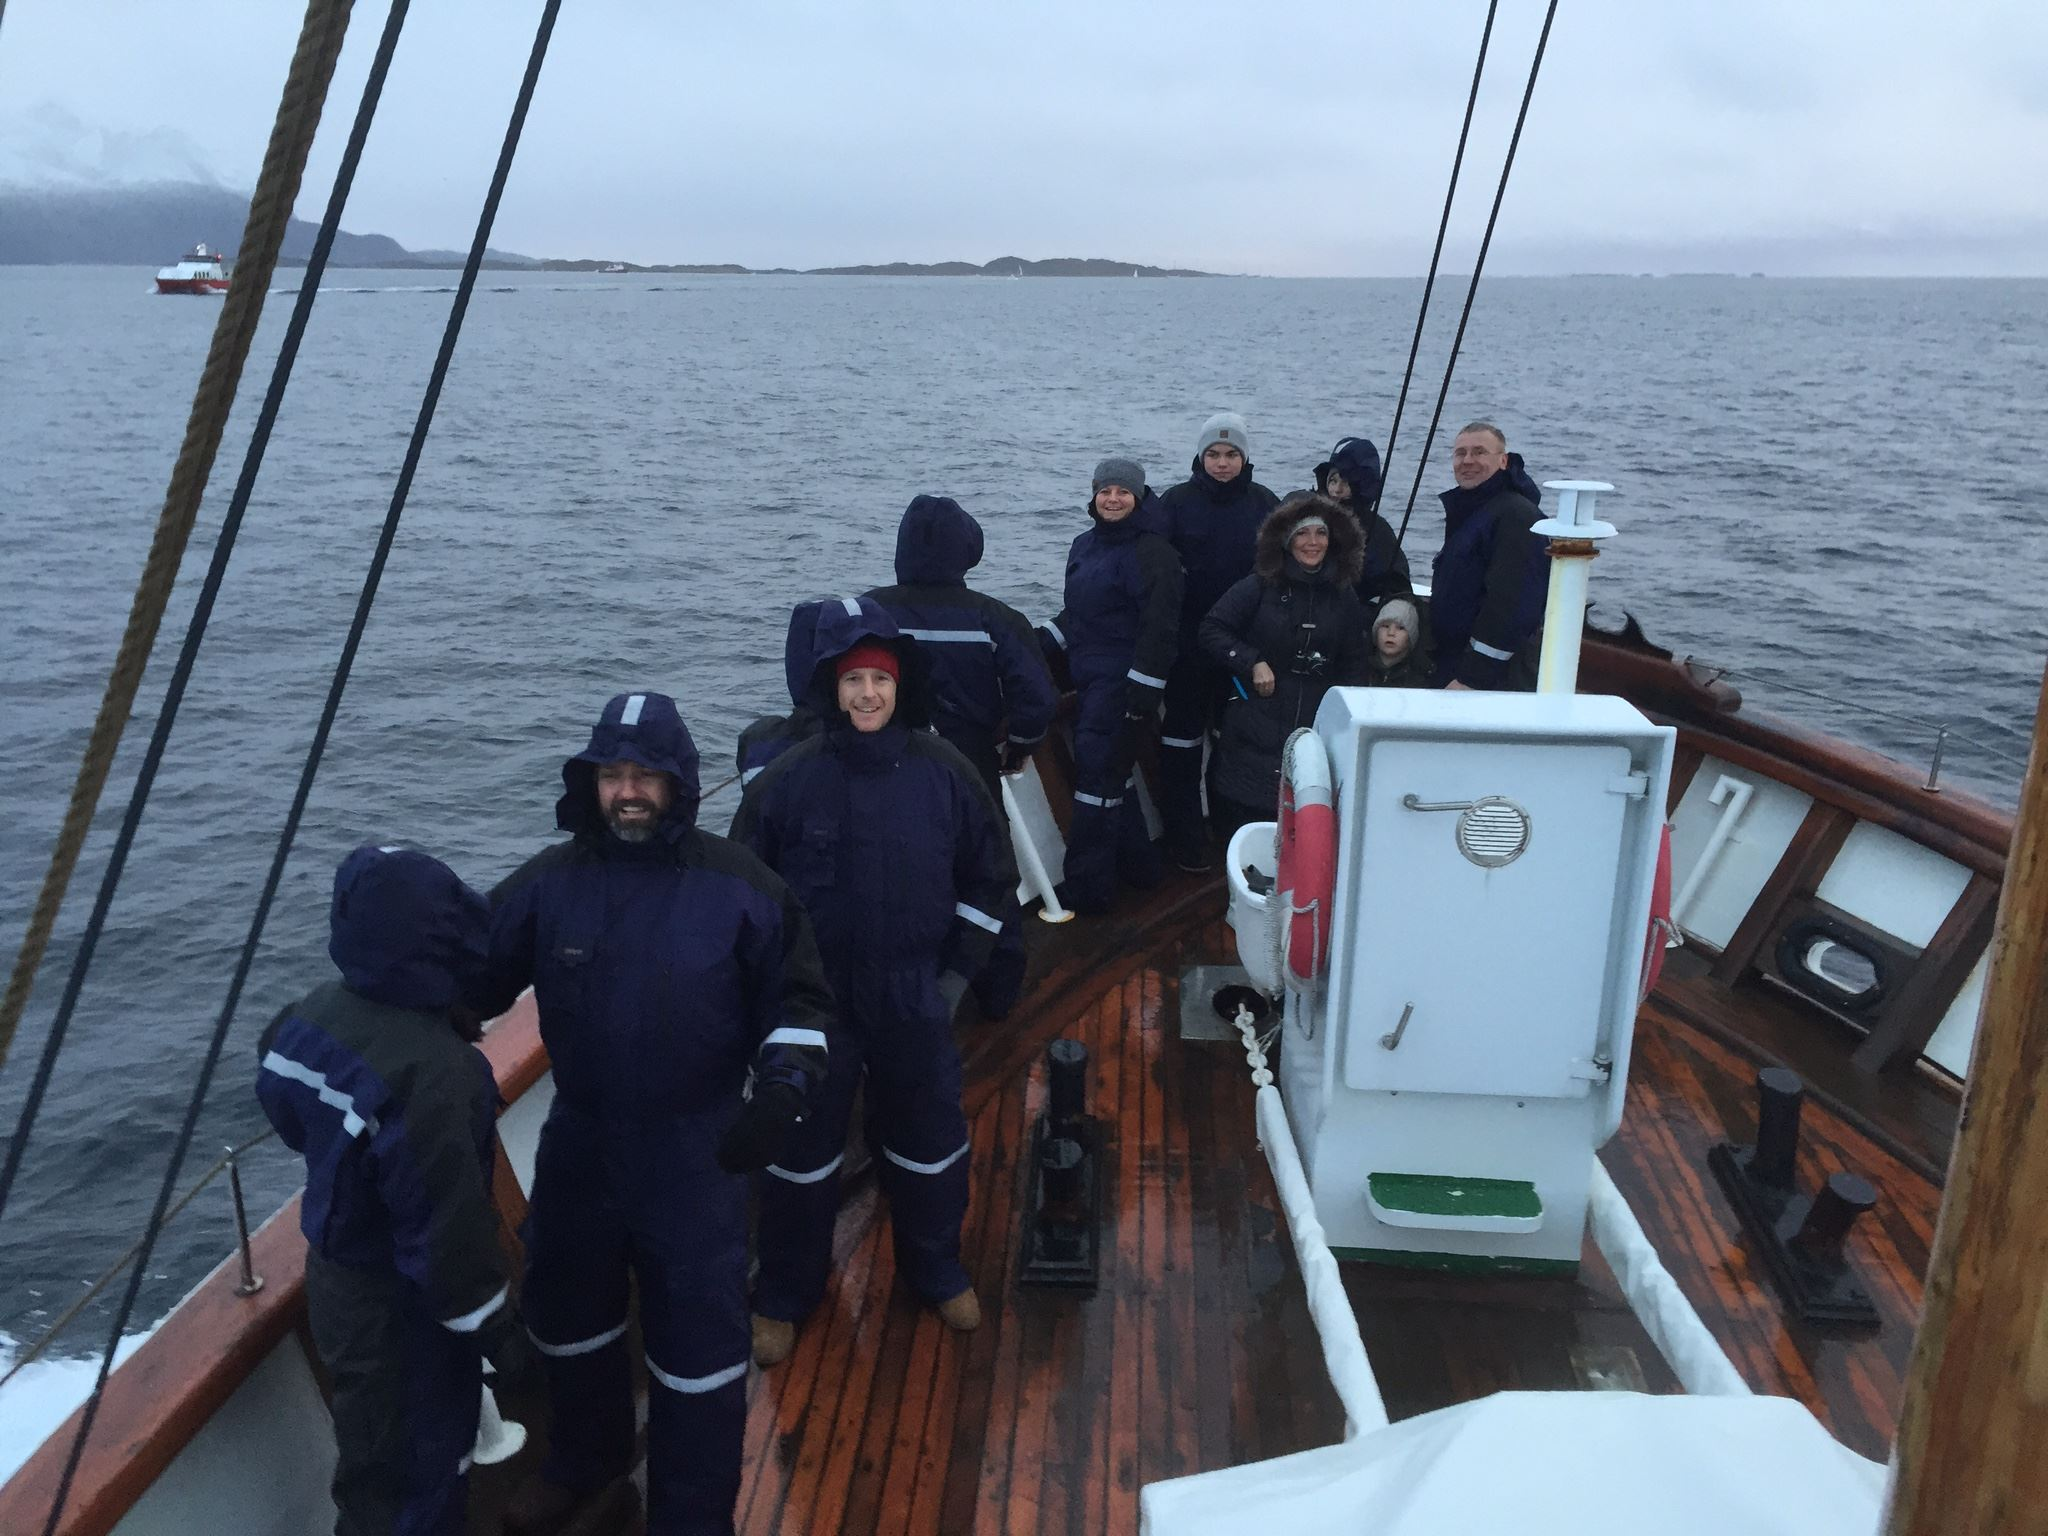 Local fishing tour with the rescue boat Olav Ringdal Jr - Northern Sea Adventure